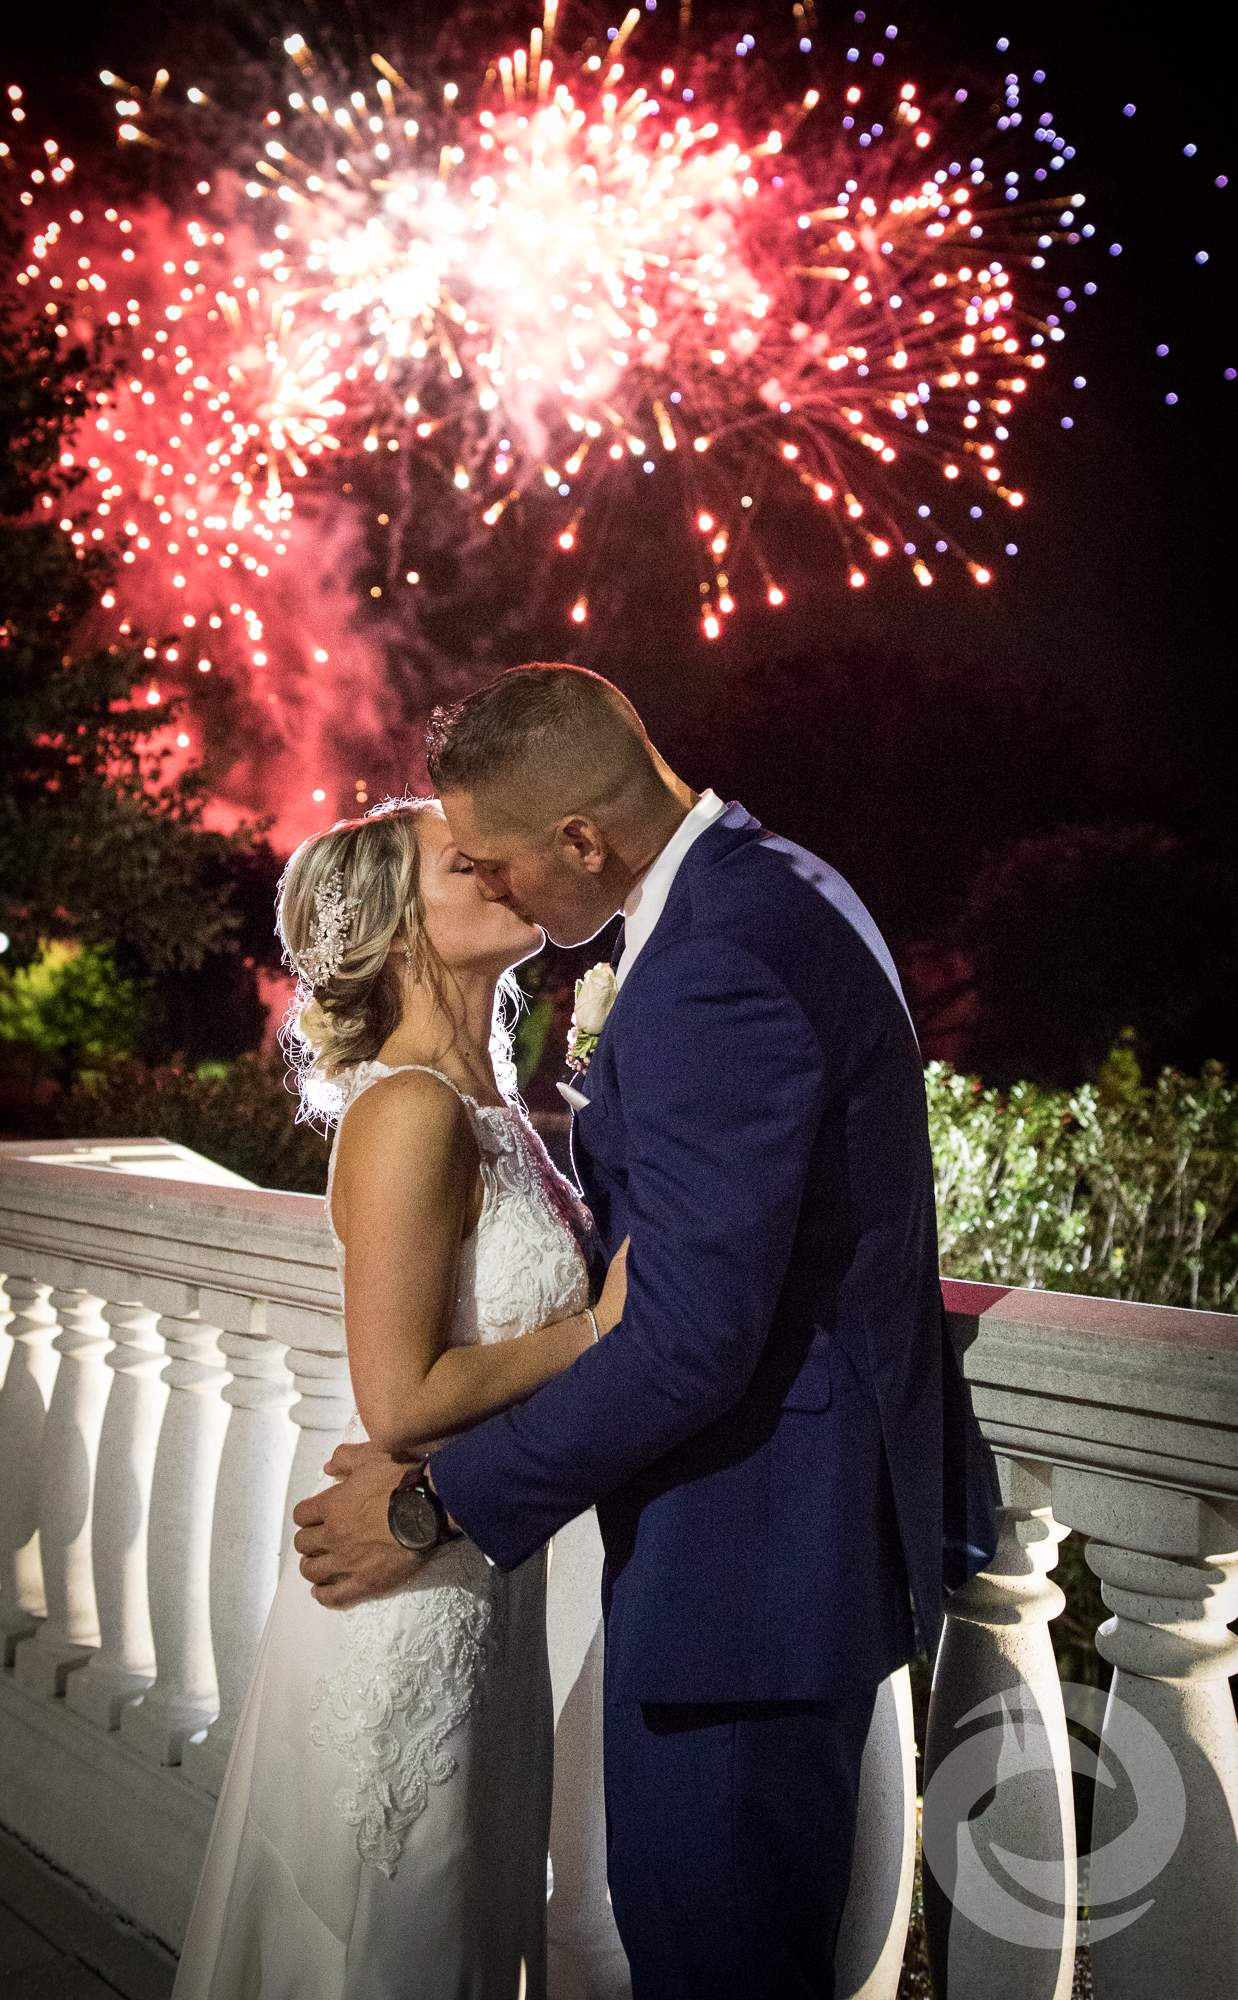 Wedding Kiss Photo With Fireworks Overhead